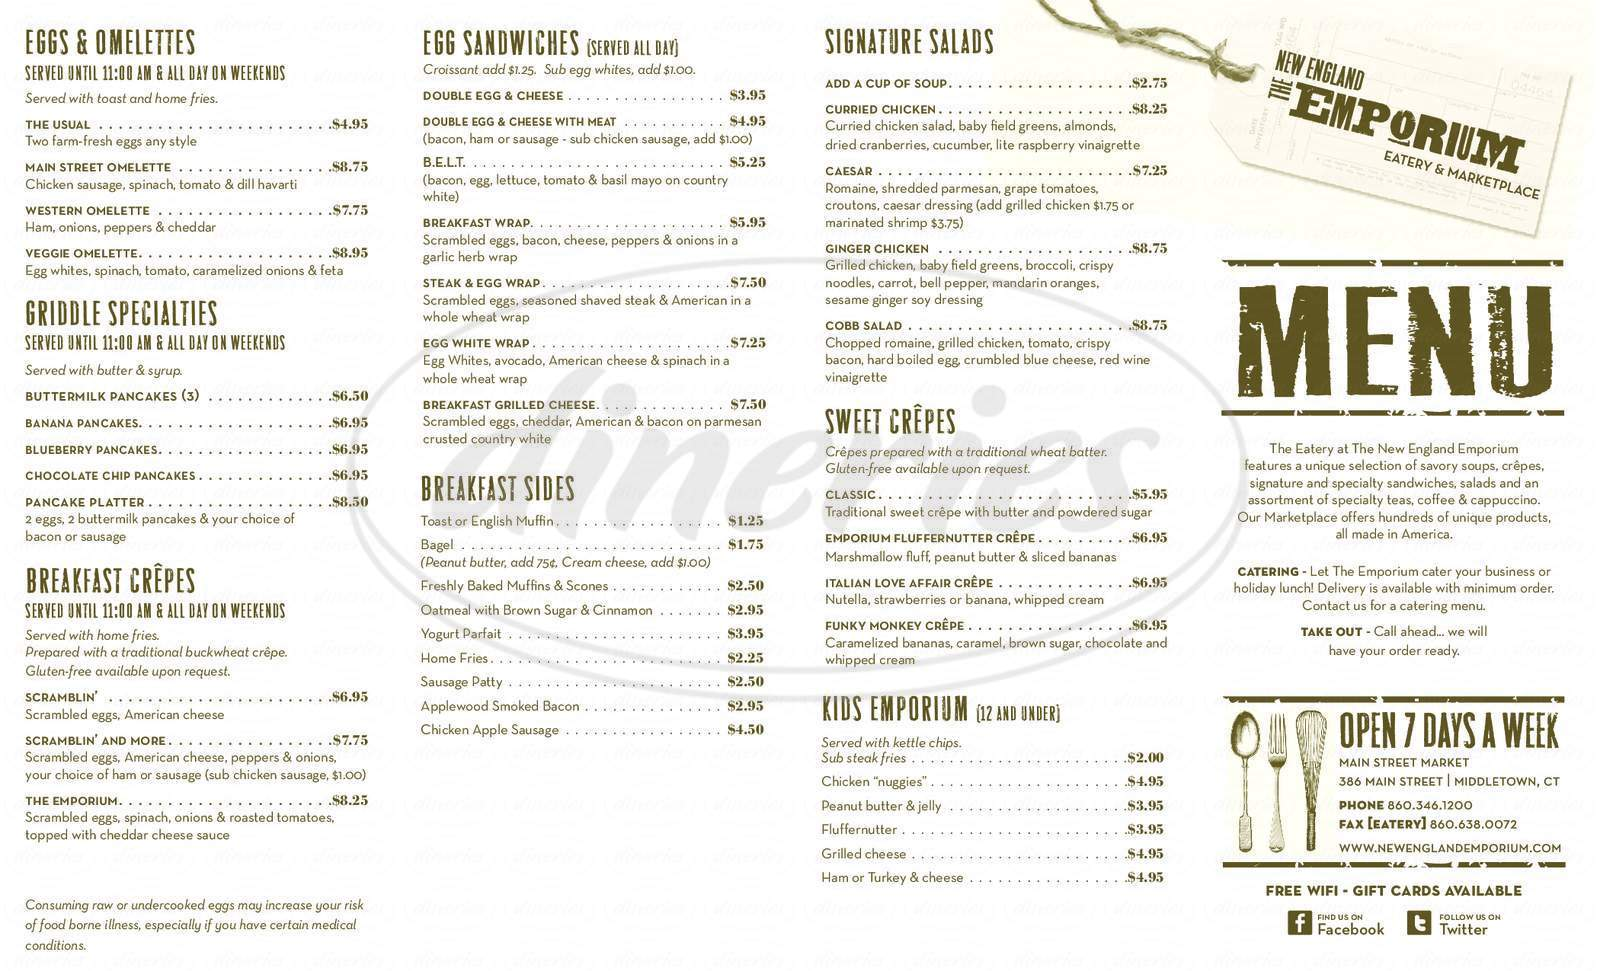 menu for New England Emporium Eatery & Marketplace